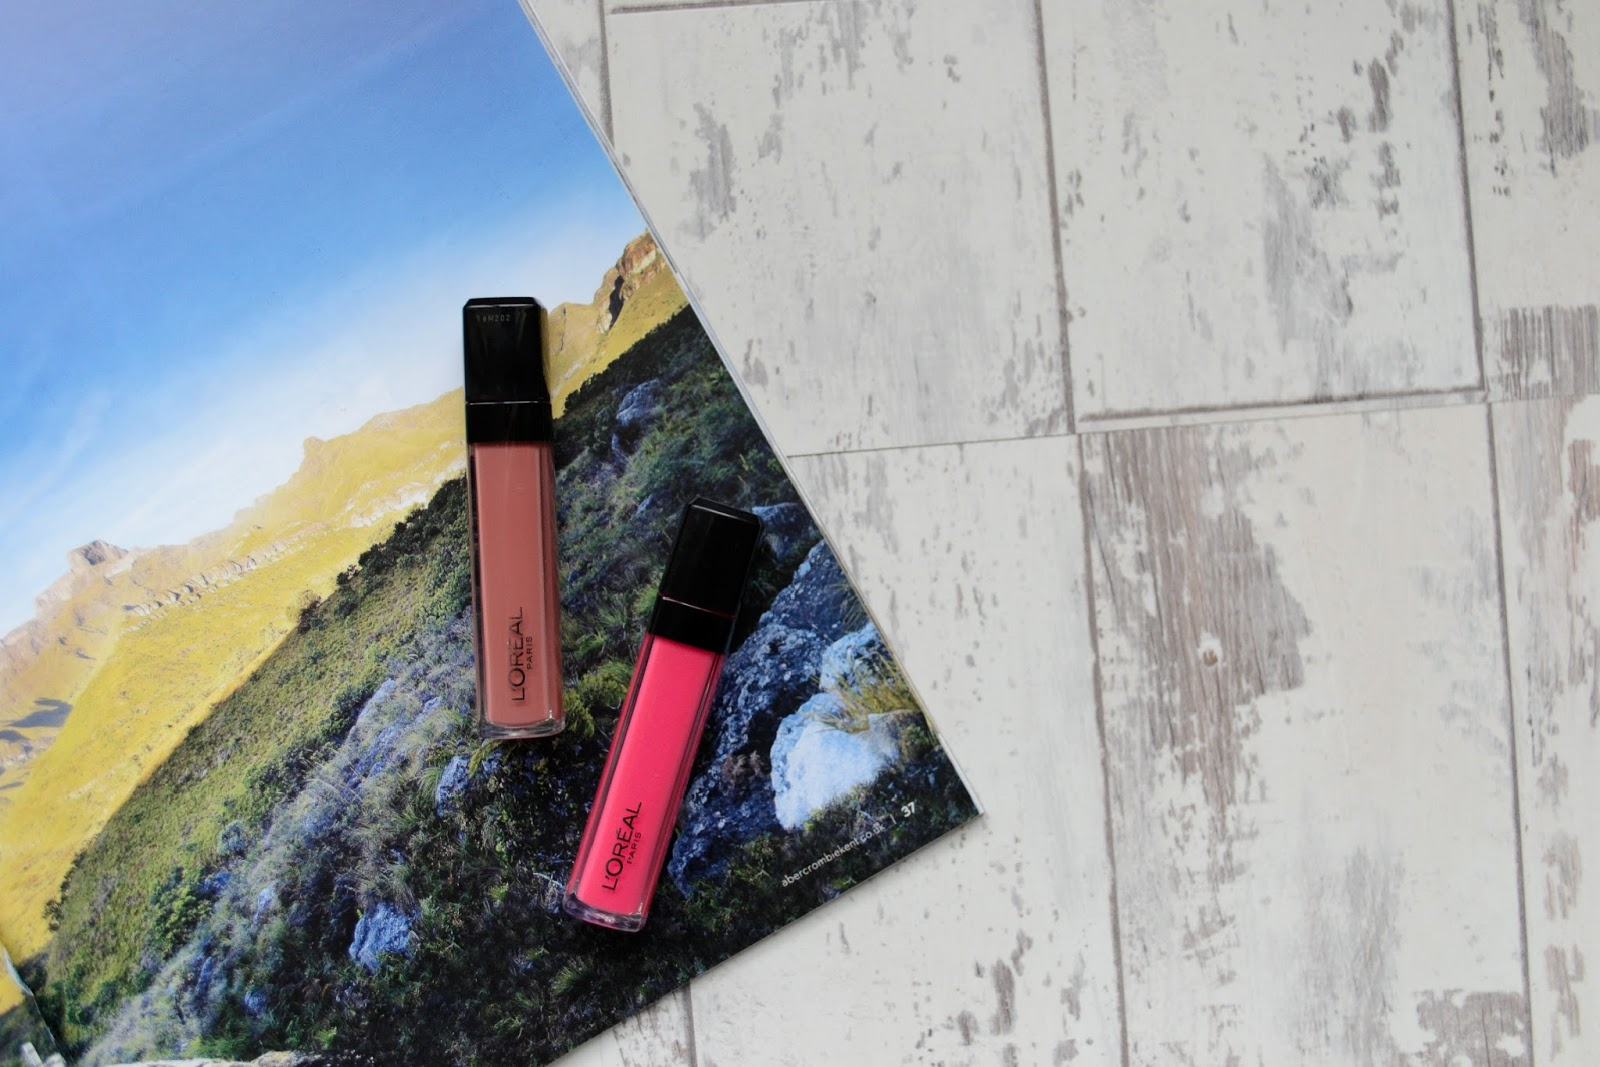 L'Oreal Paris Infallible Mega Gloss Review - Aspiring Londoner